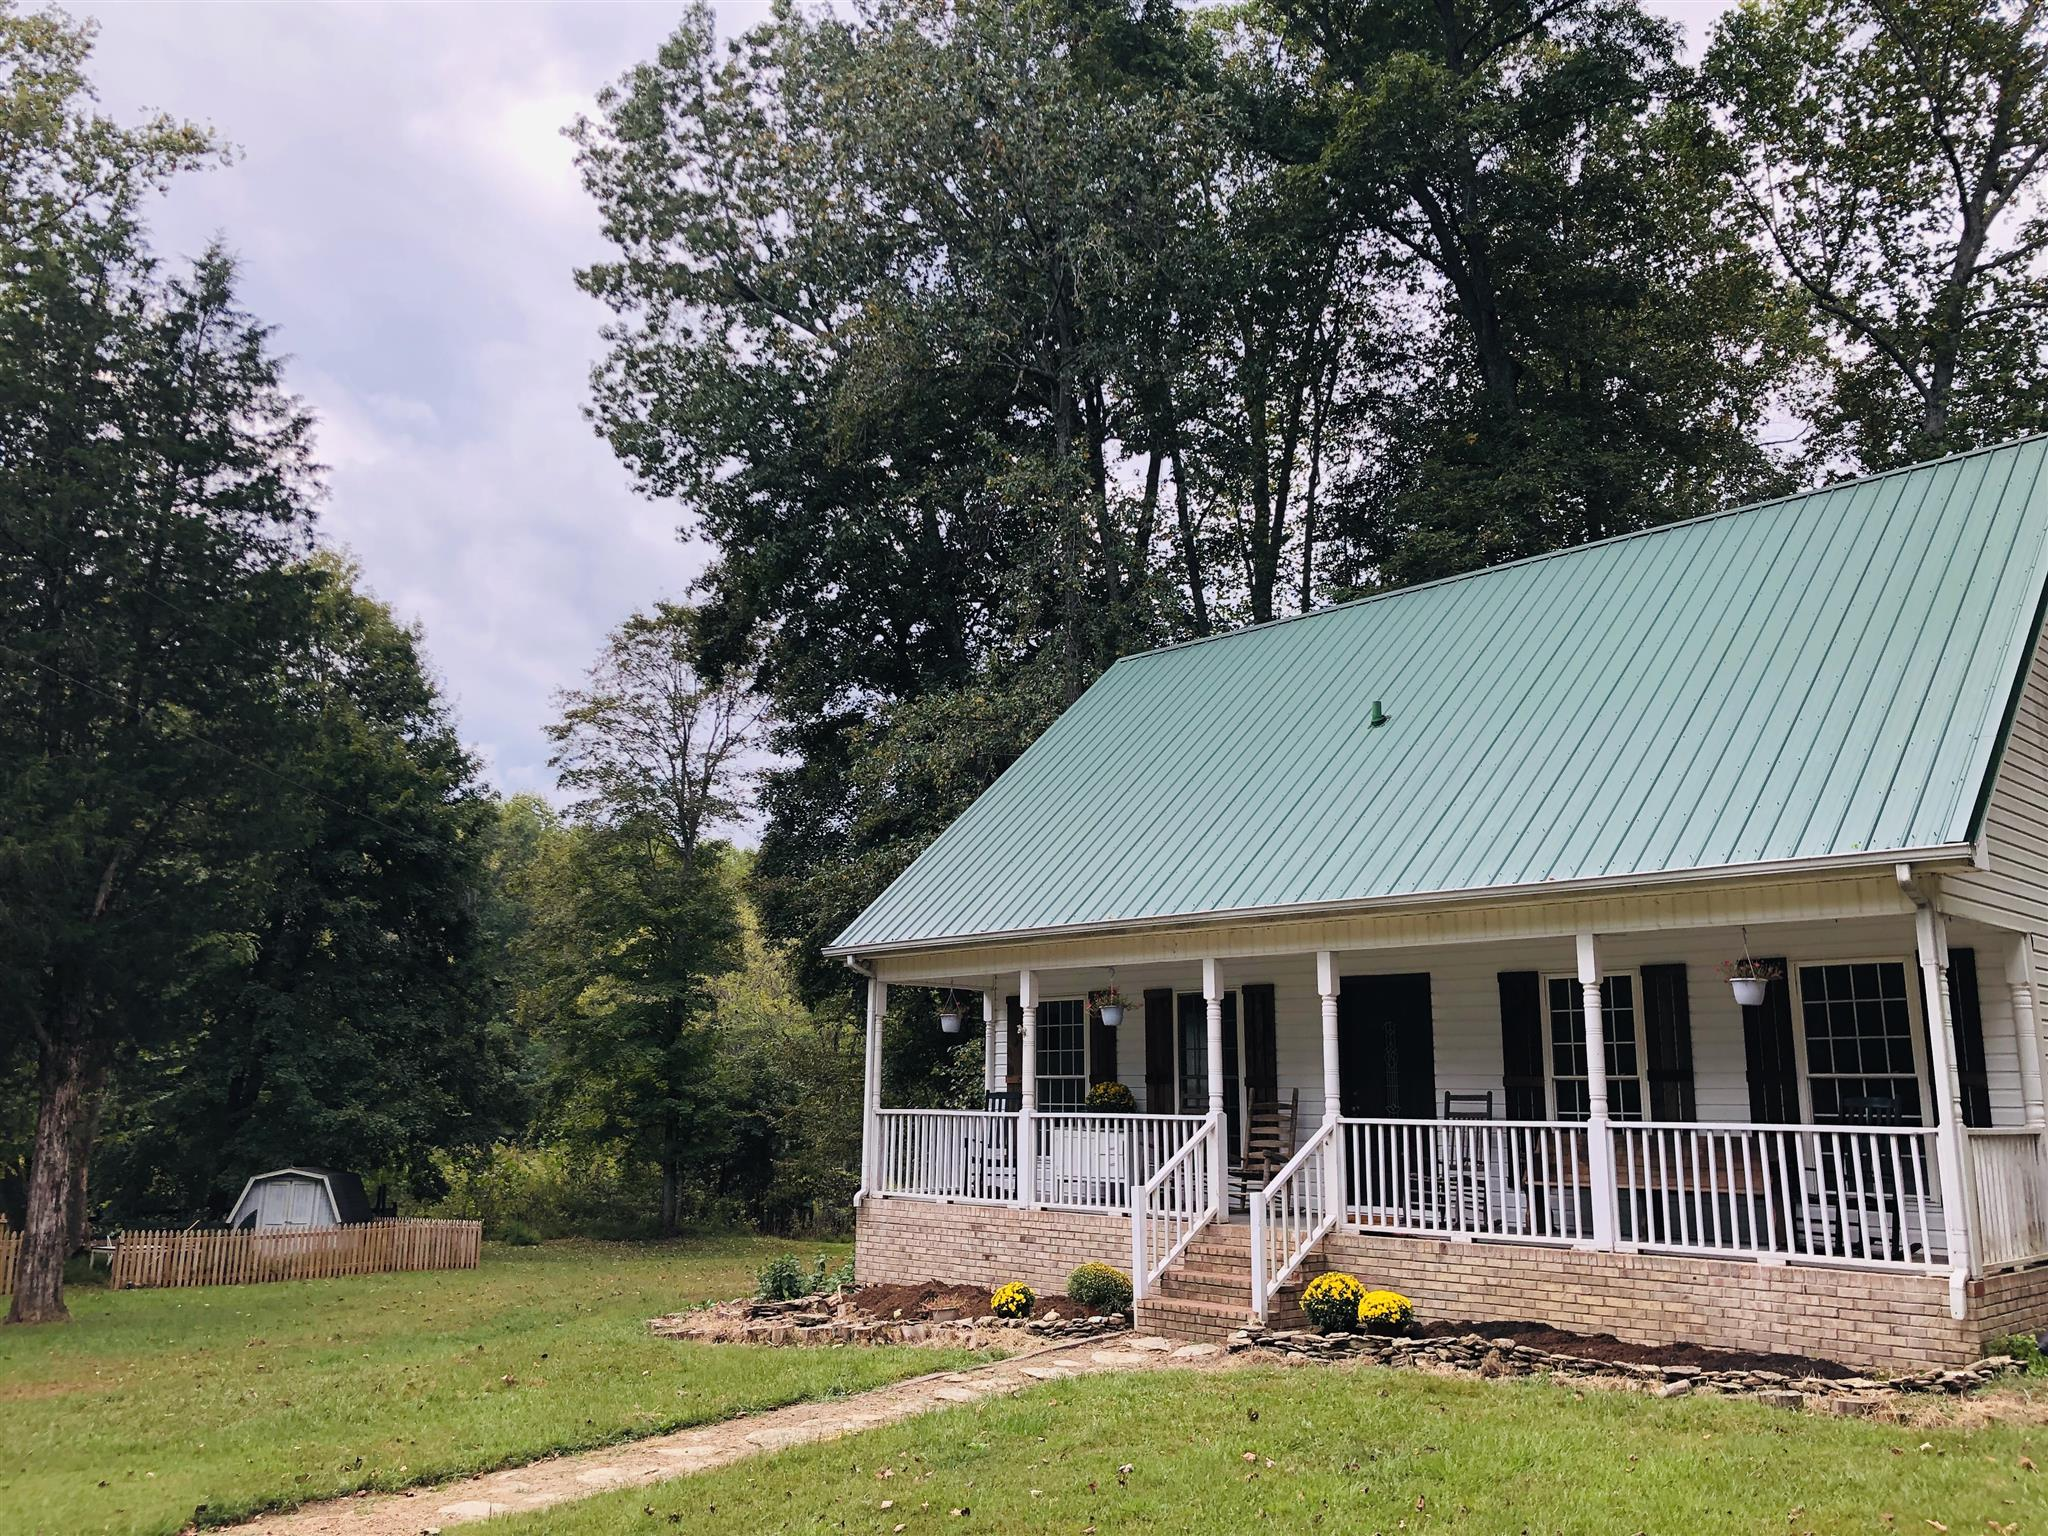 1205 Smiley Troutt Rd, Bethpage, TN 37022 - Bethpage, TN real estate listing